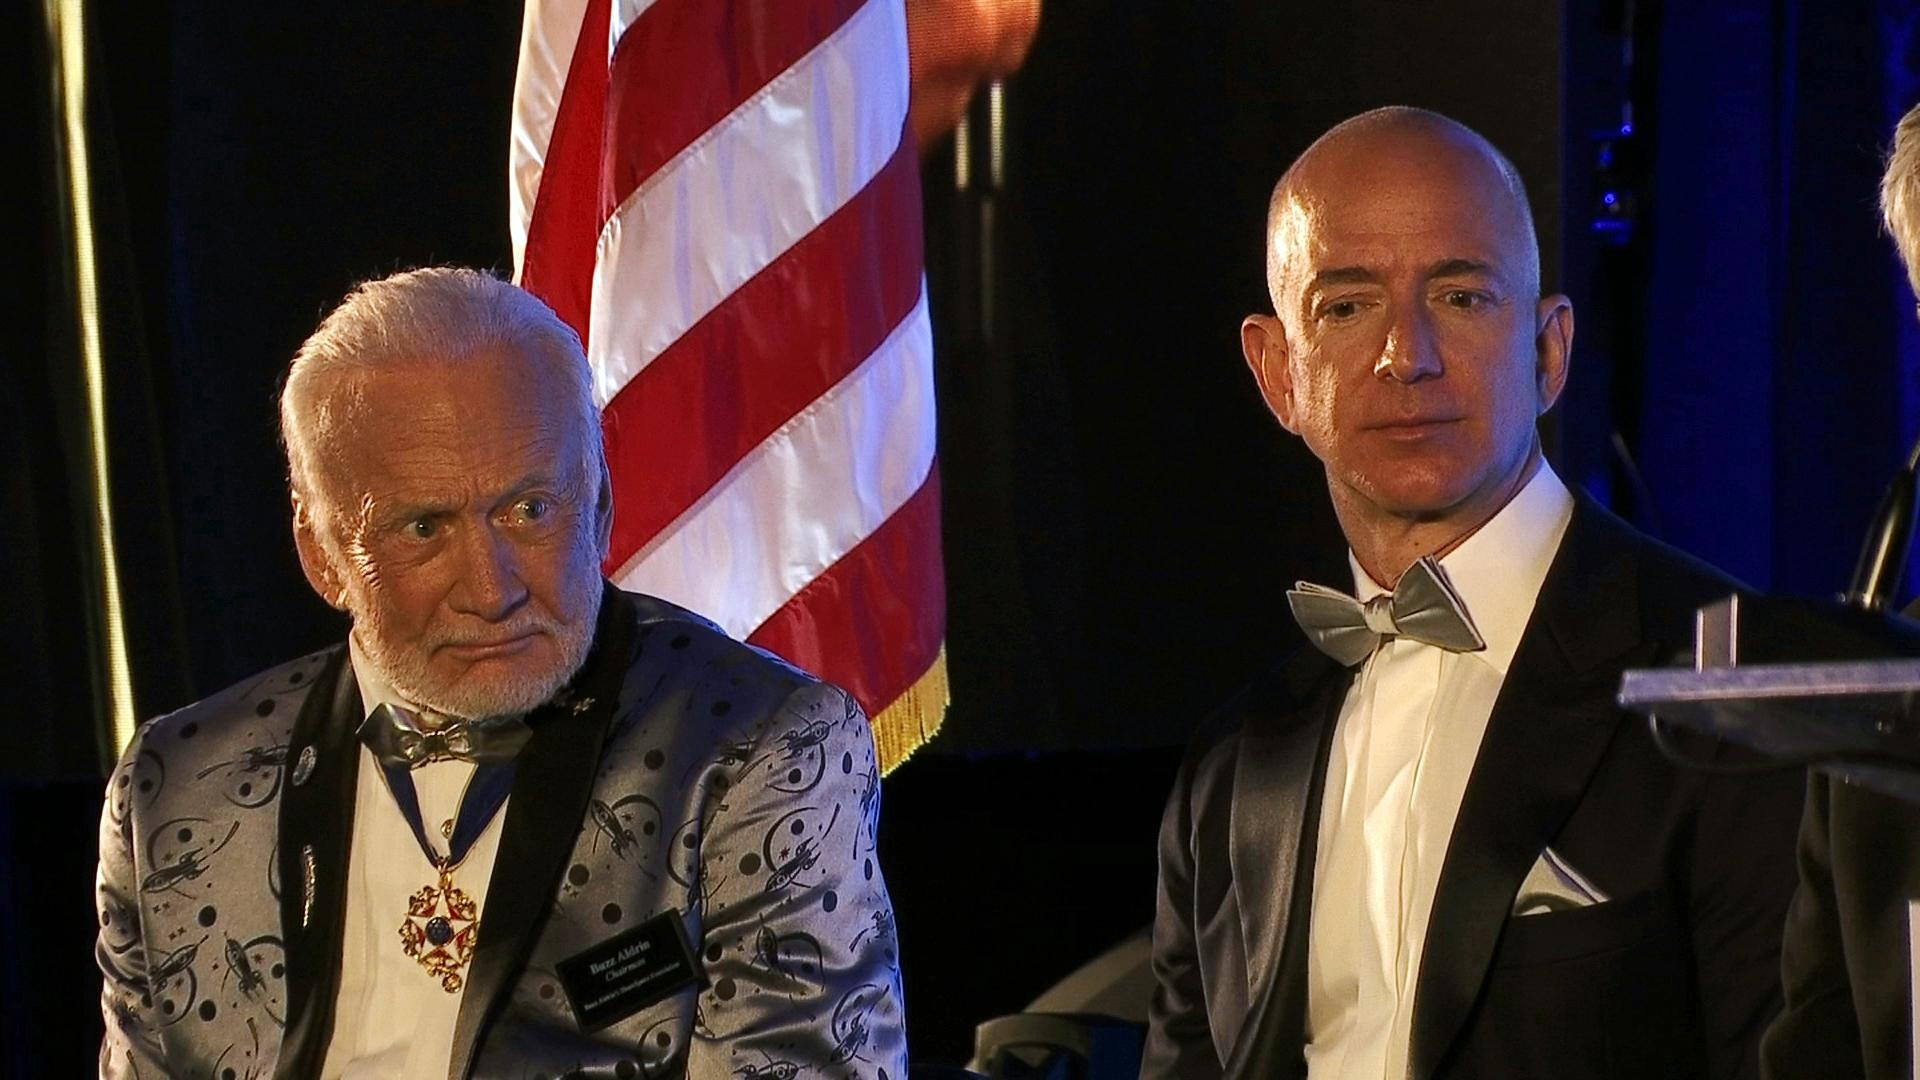 Apollo 11 astronaut Buzz Aldrin, left, and Amazon.com and Blue Origins founder Jeff Bezos attend the commemoration for the upcoming anniversary of the 1969 mission to the moon and a gala for Aldrin's non-profit space education foundation, ShareSpace Foundation, at the Kennedy Space Center in Cape Canaveral, Fla., on Saturday, July 15, 2017. (AP Photo/Alex Sanz)